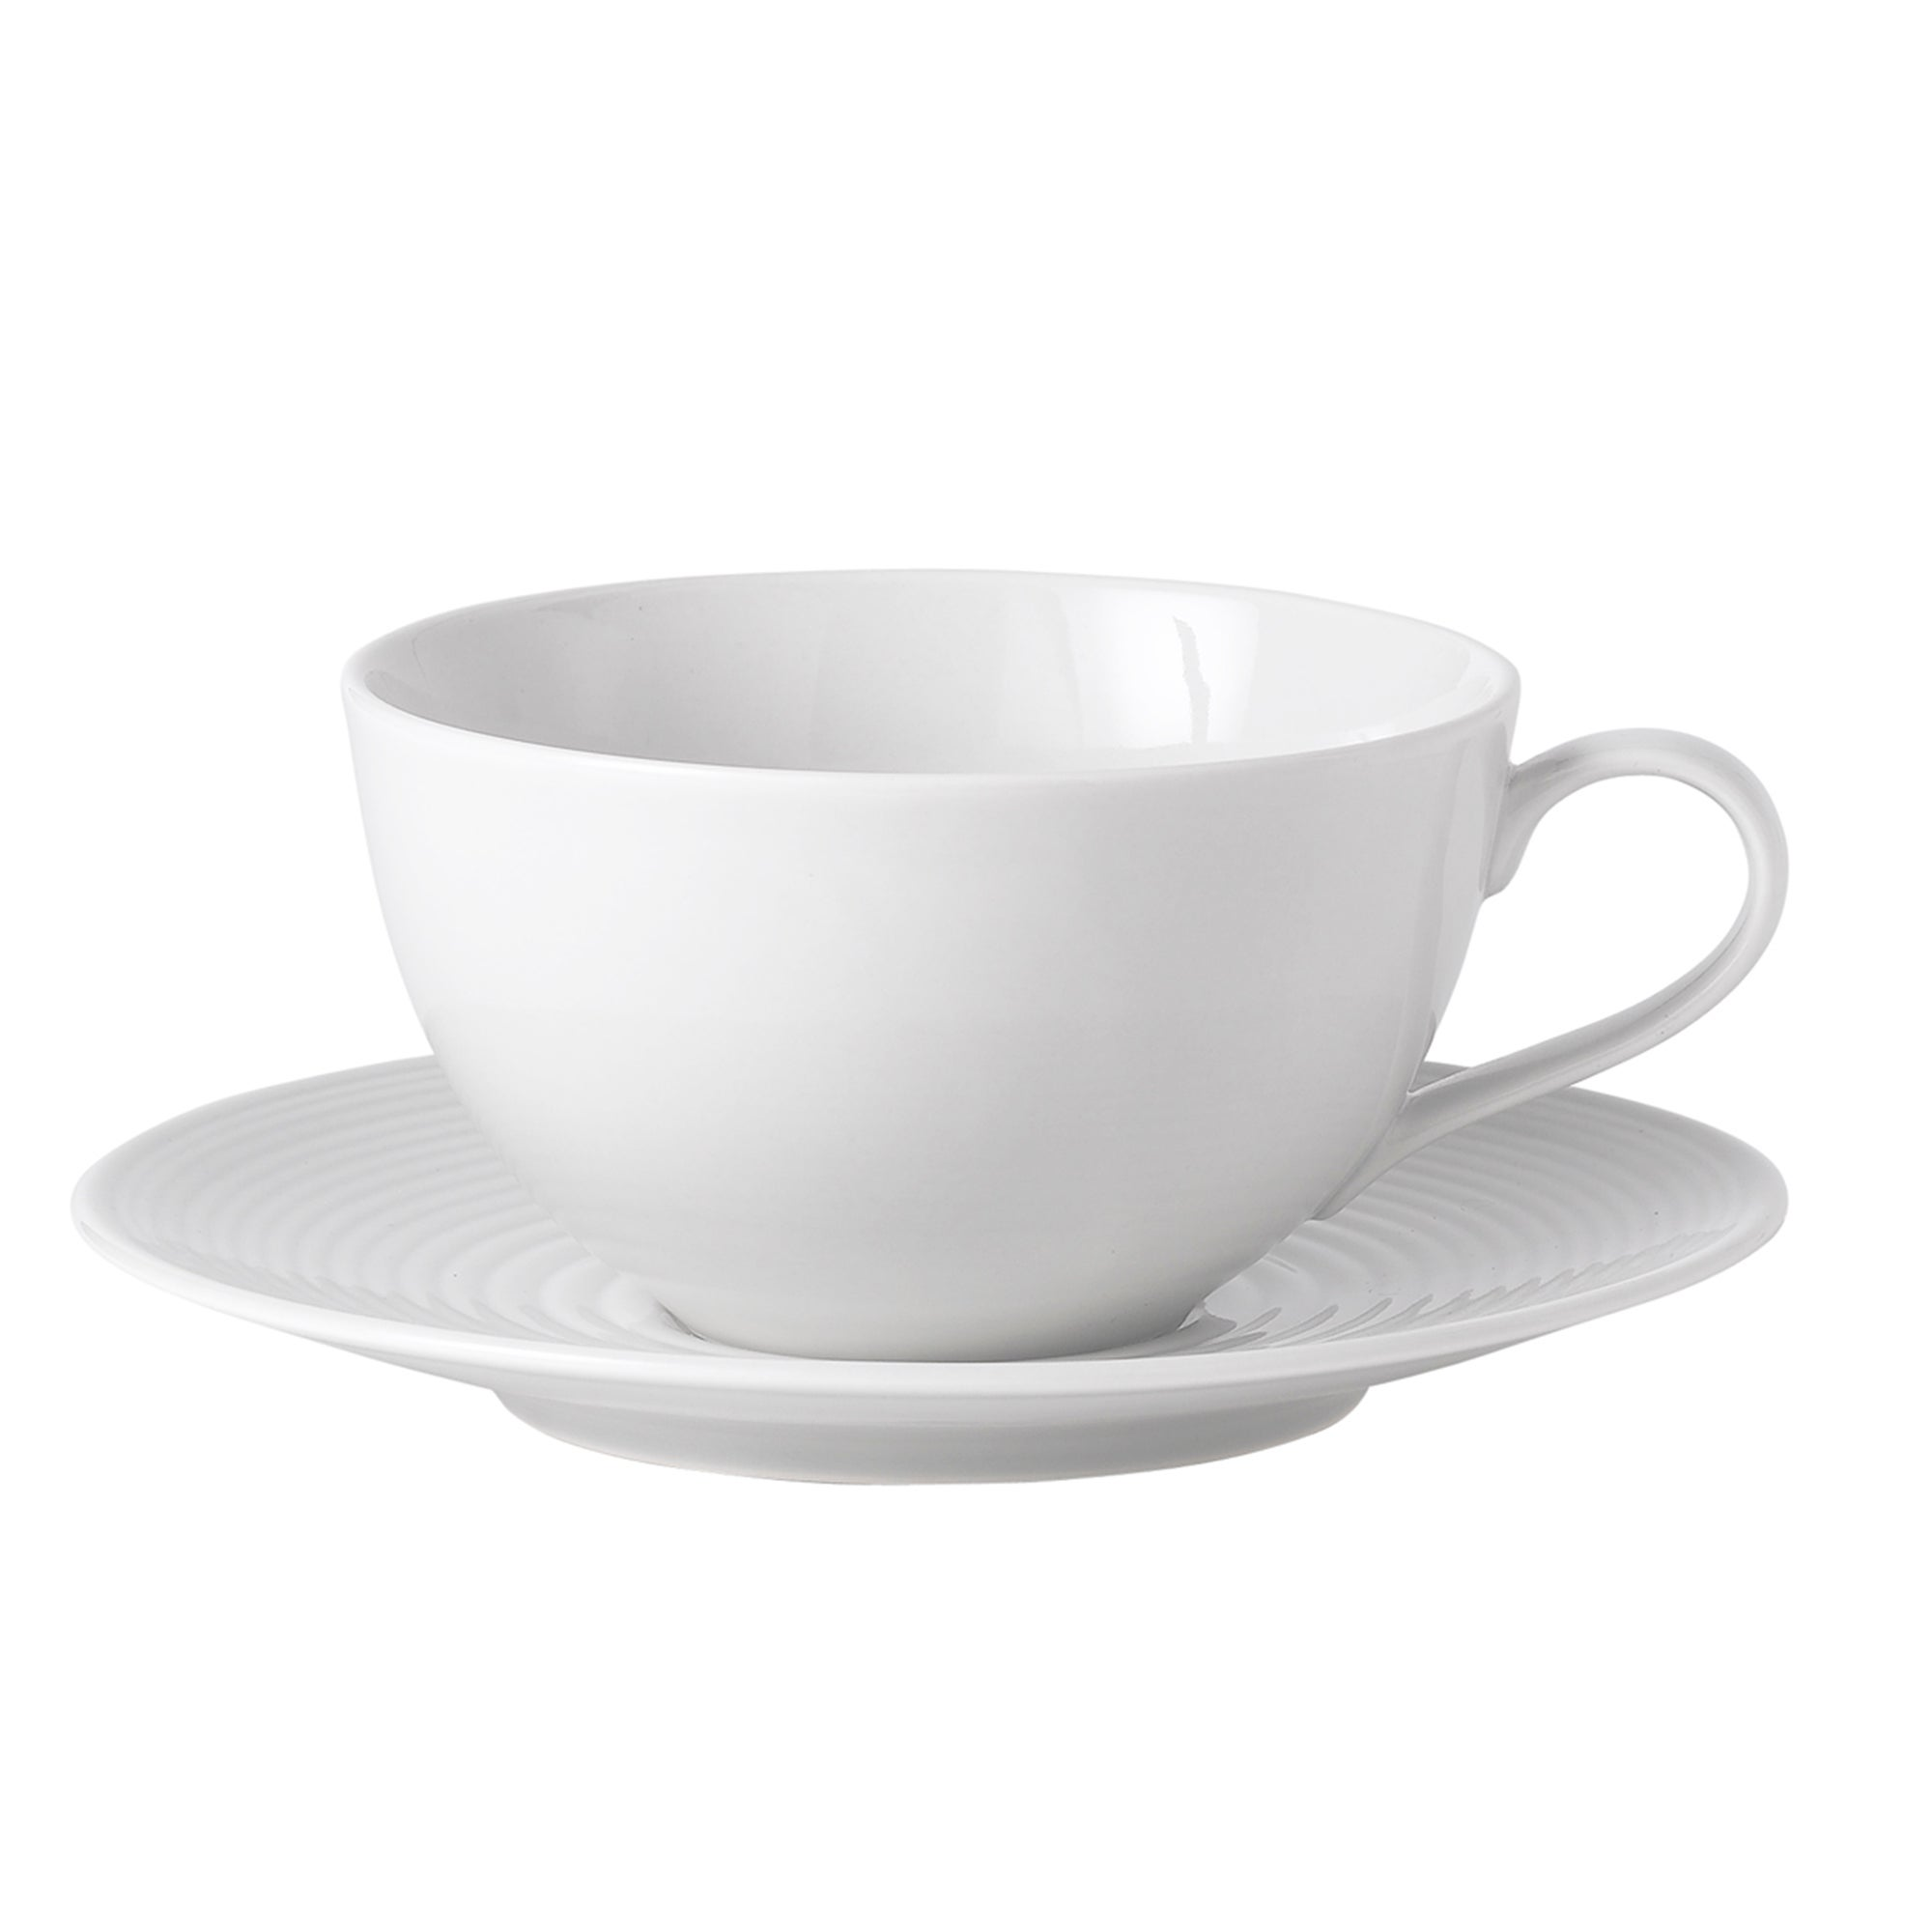 White Gordon Ramsay Maze Collection Cup and Saucer Set